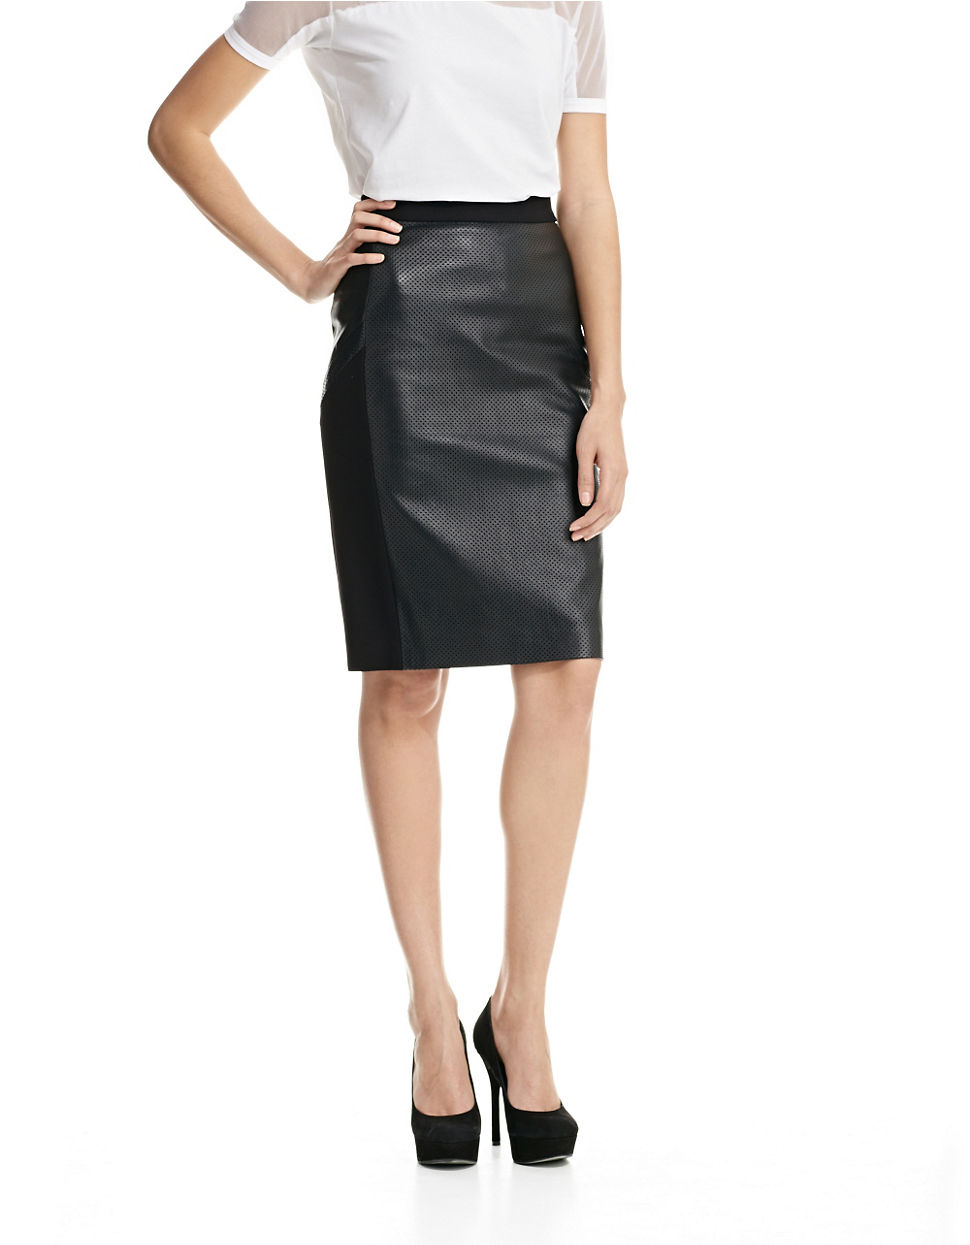 585406f0b6225 Dkny Perforated Leather Pencil Skirt with Ponte Sides and Back in ...